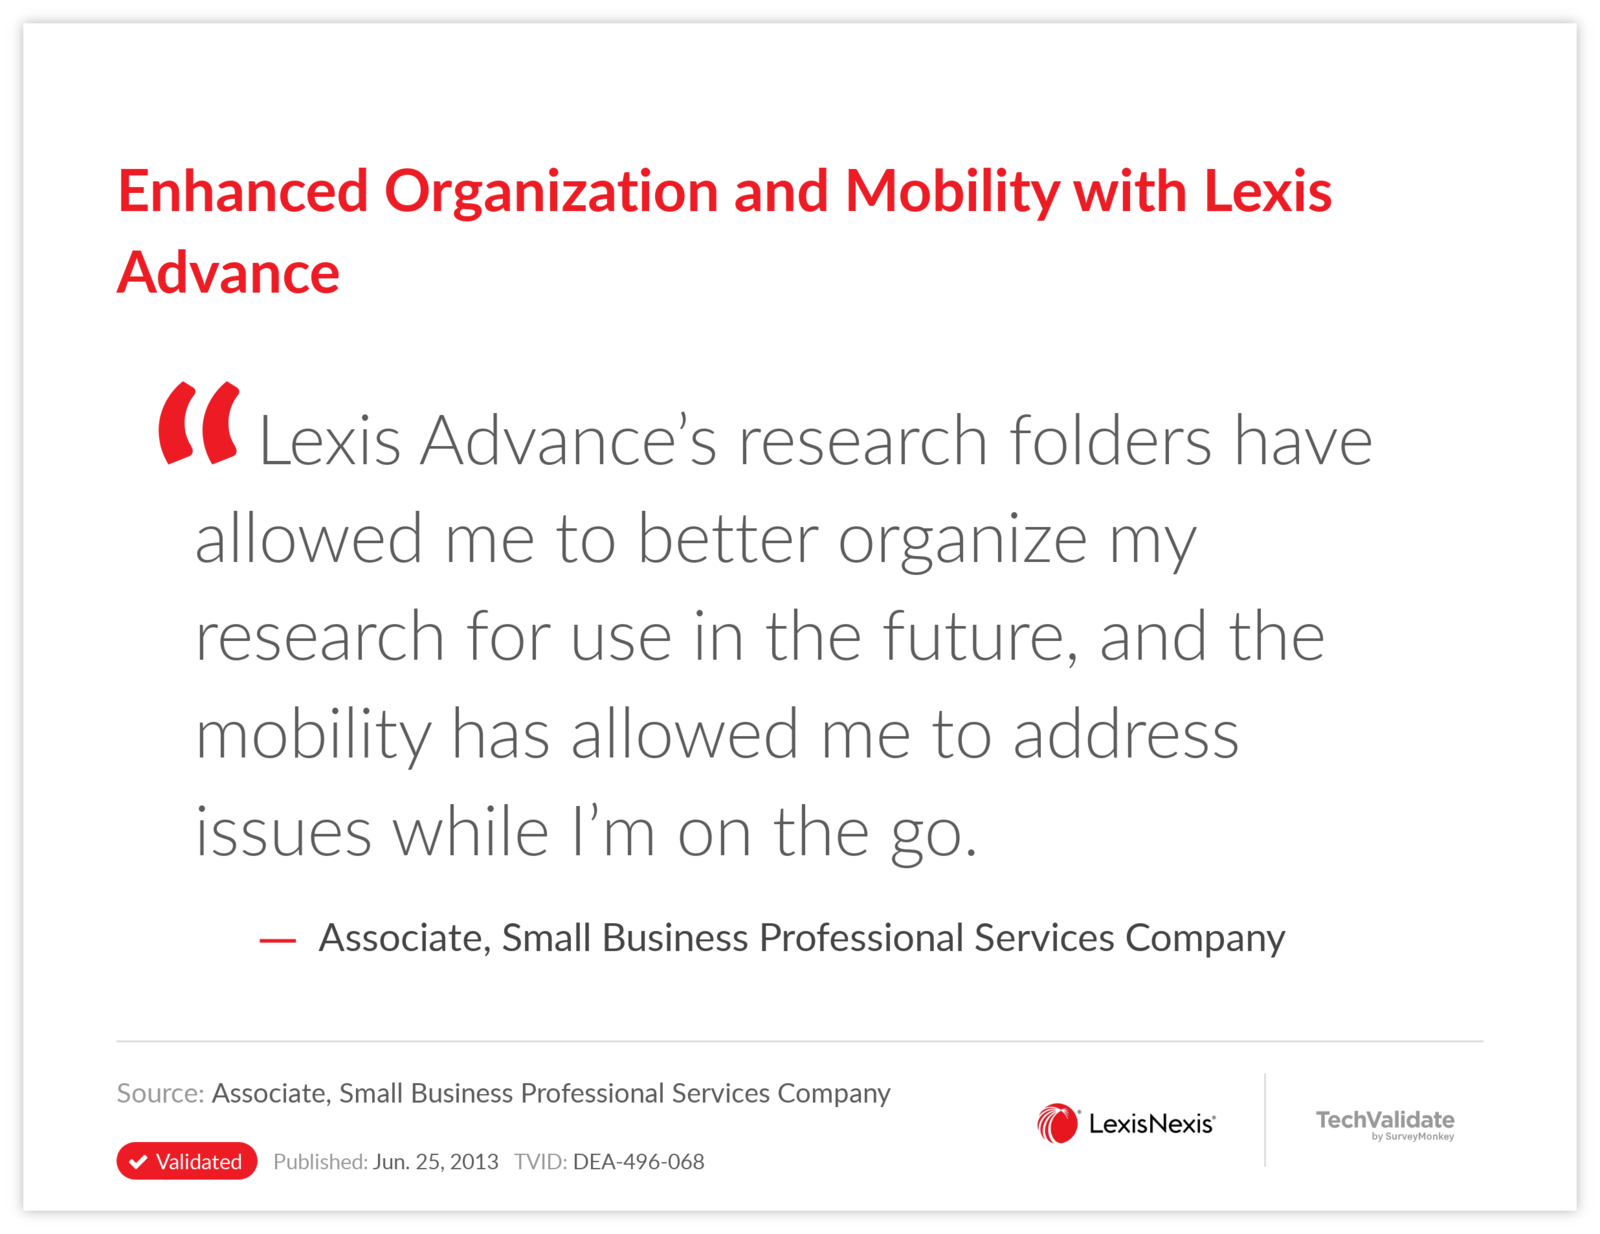 Enhanced Organization and Mobility with Lexis Advance